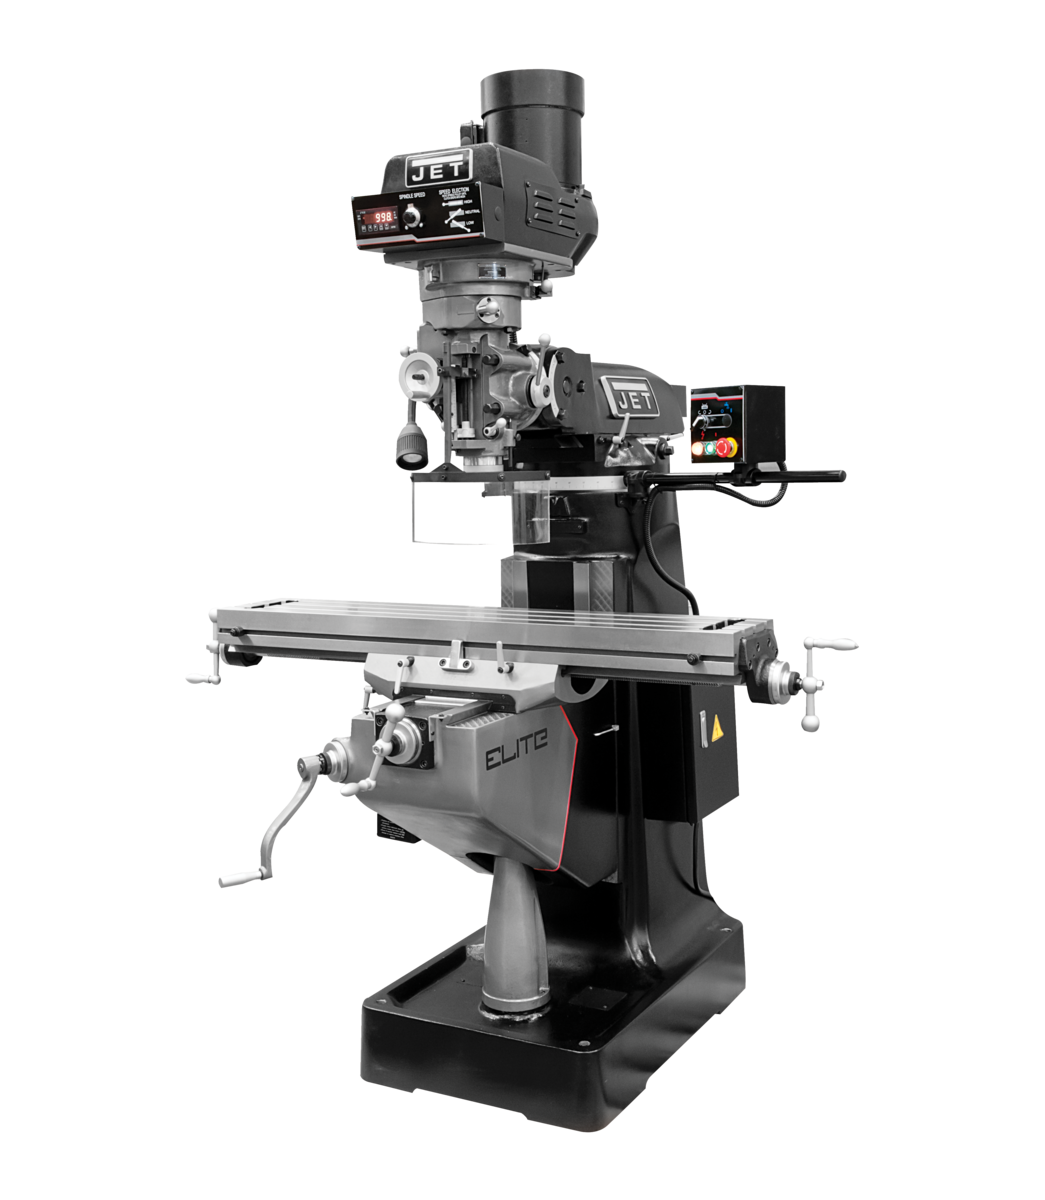 EVS-949 Mill with 3-Axis ACU-RITE 303  (Knee) DRO and X-Axis JET Powerfeed